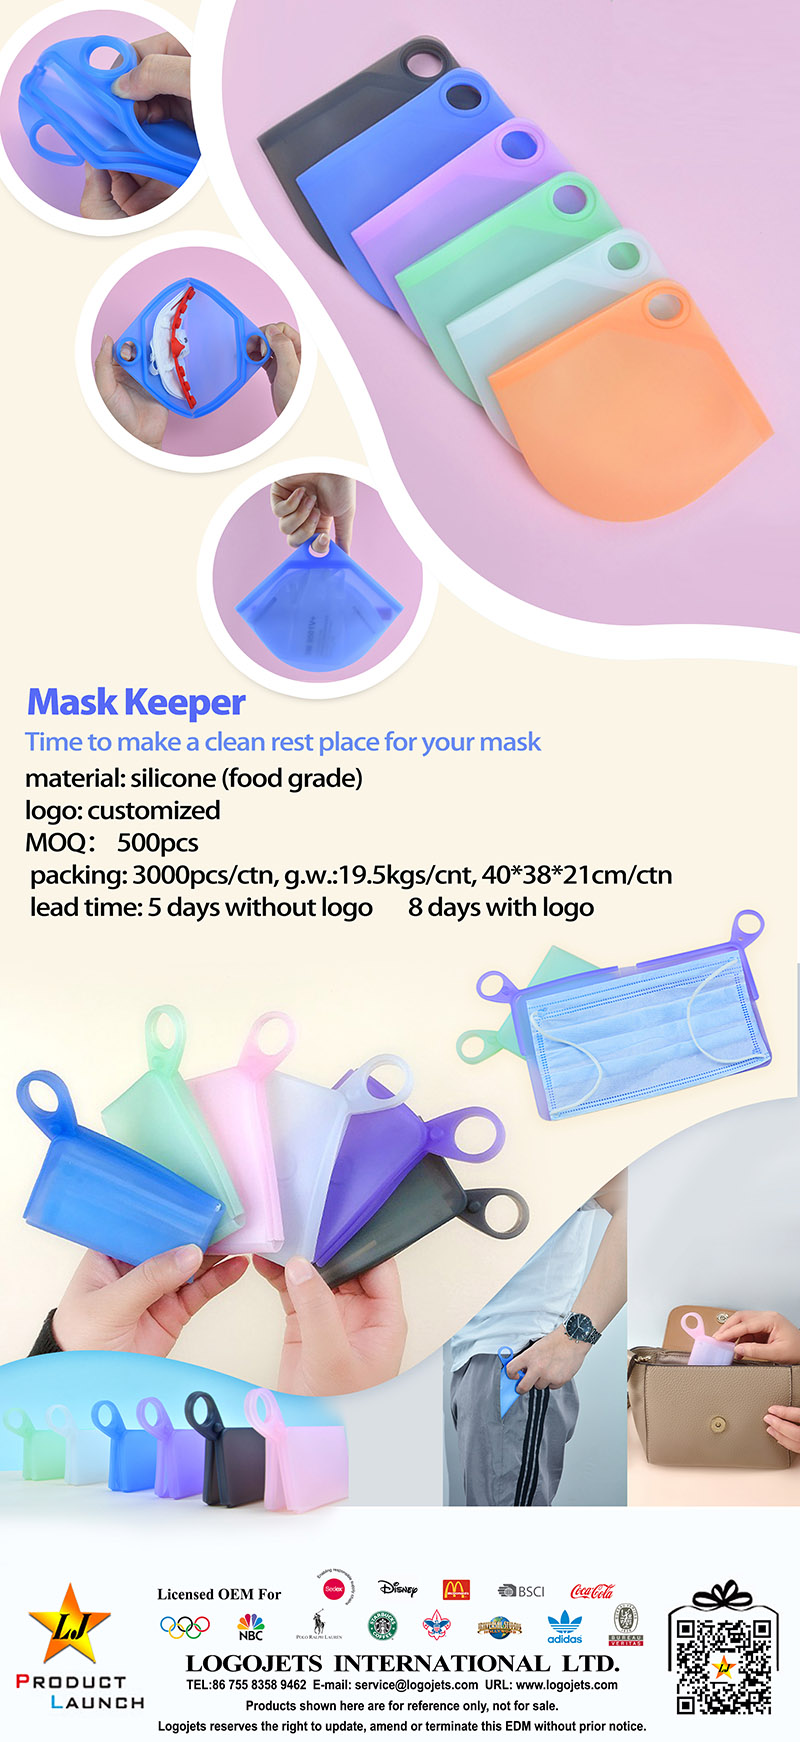 Mask Keeper (Silicone)